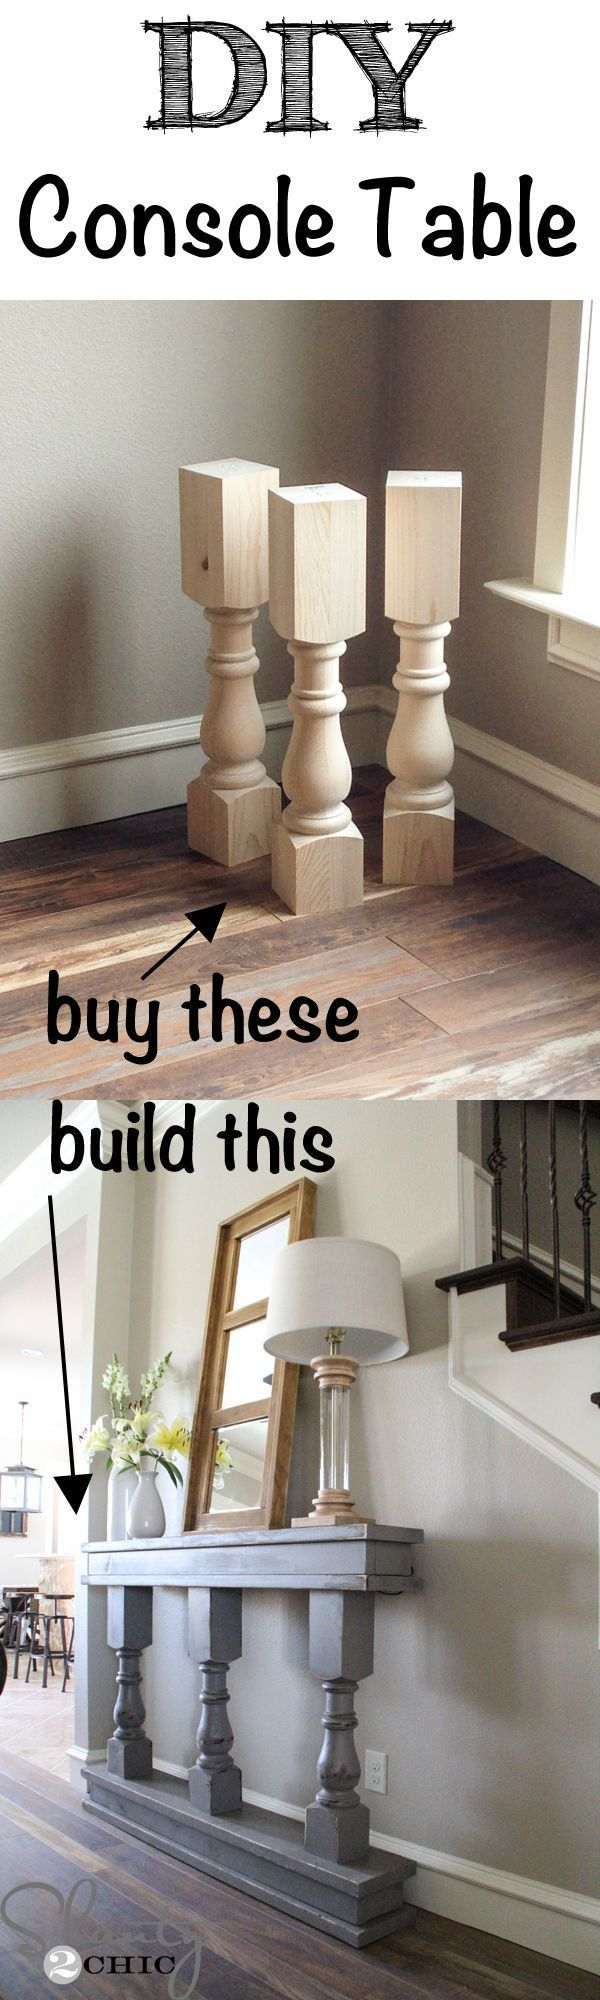 This might be a great idea for the entryway, with no space for a closet or real table. Great DIY project!